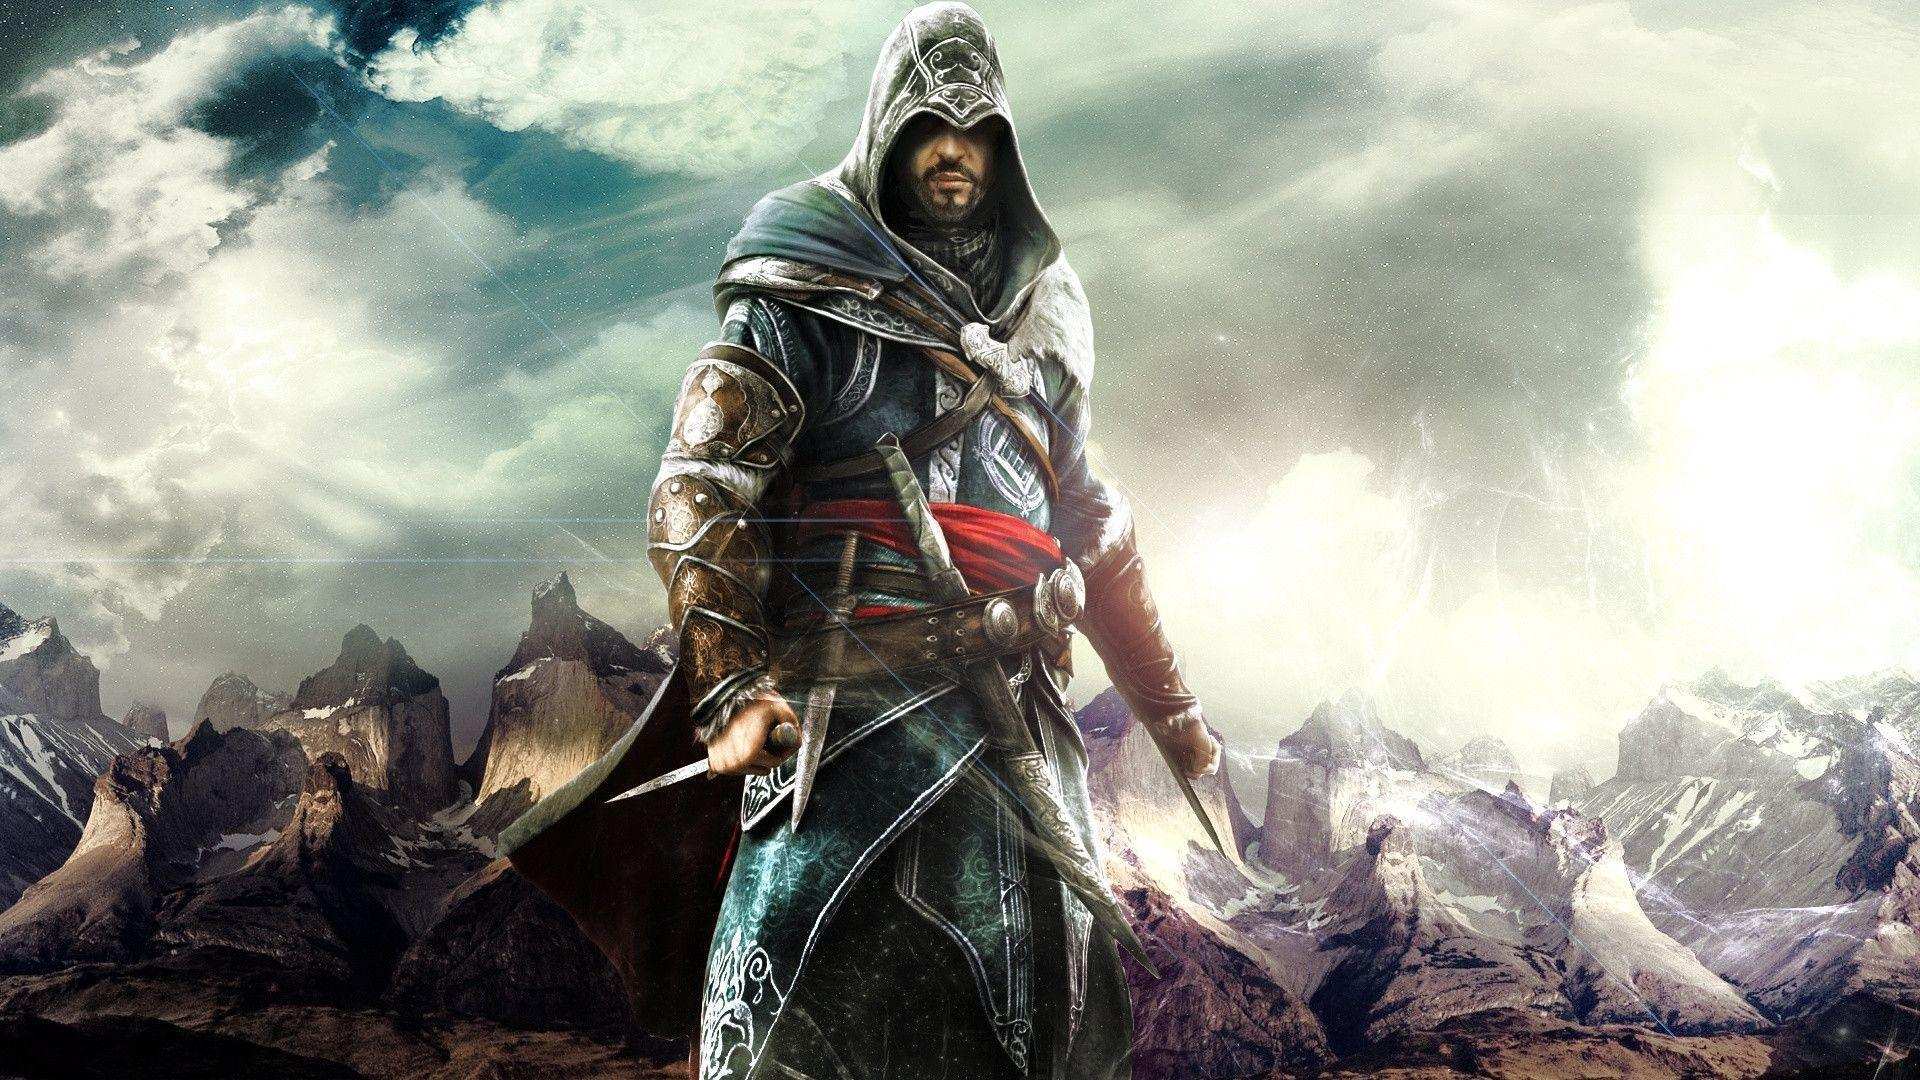 Altair Ibn La Ahad Wallpapers in jpg format for free